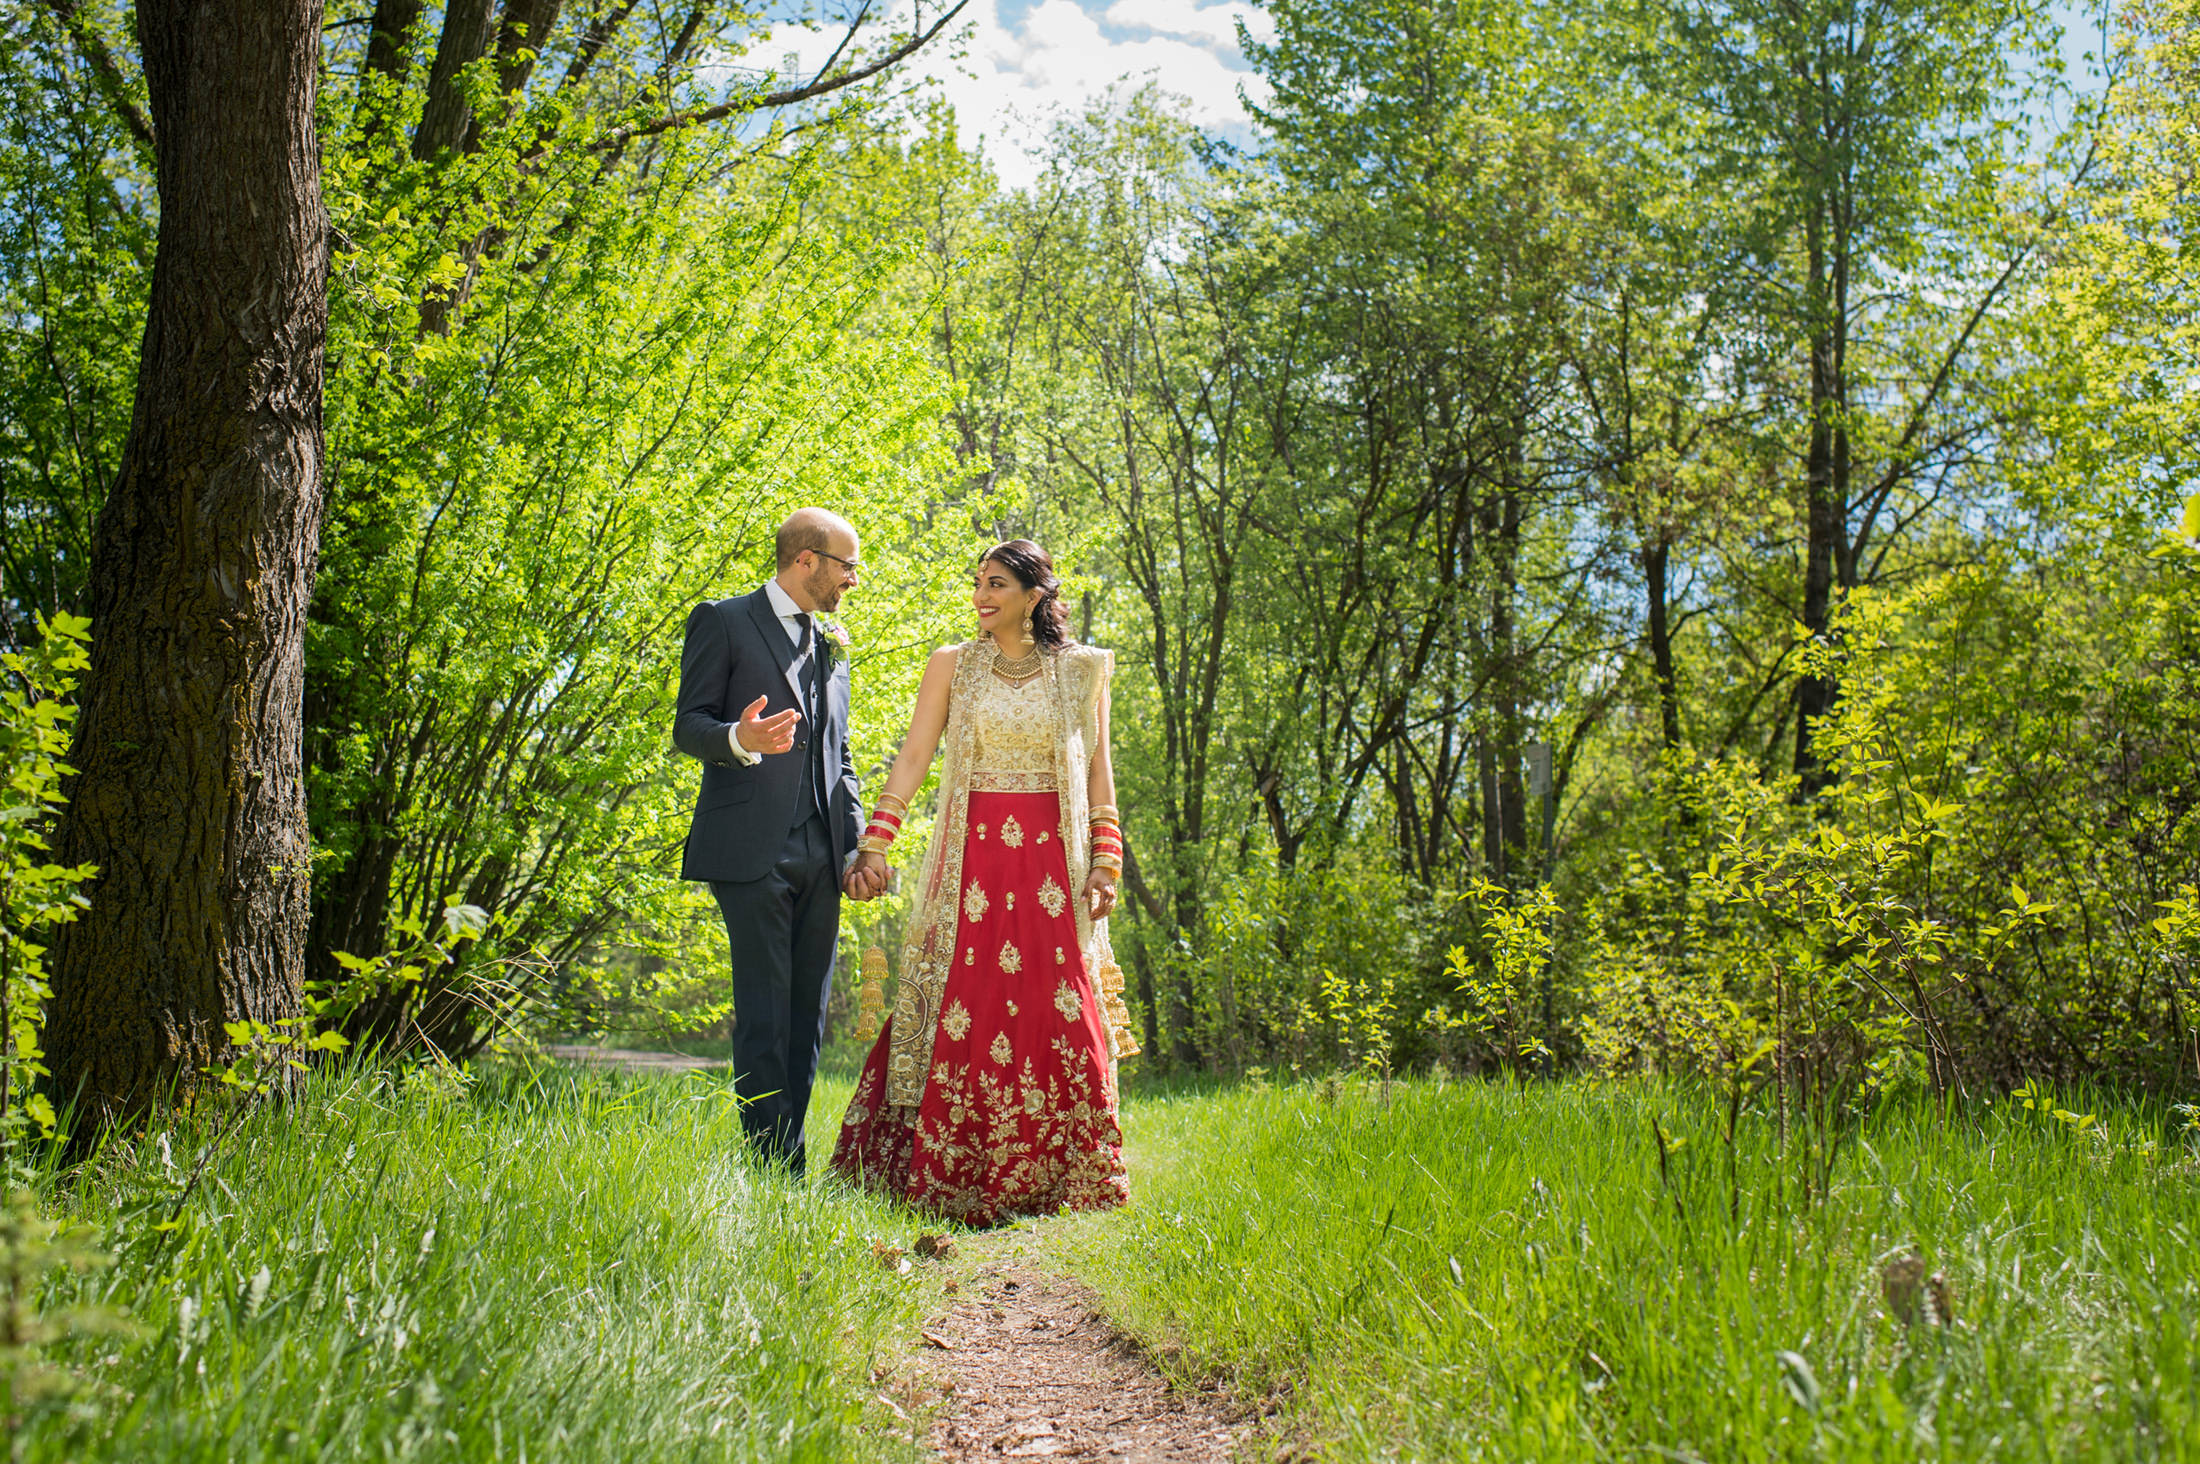 Edmonton_wedding_photographers_enjoy_center_wedding_Kiran_faisal_18.jpg